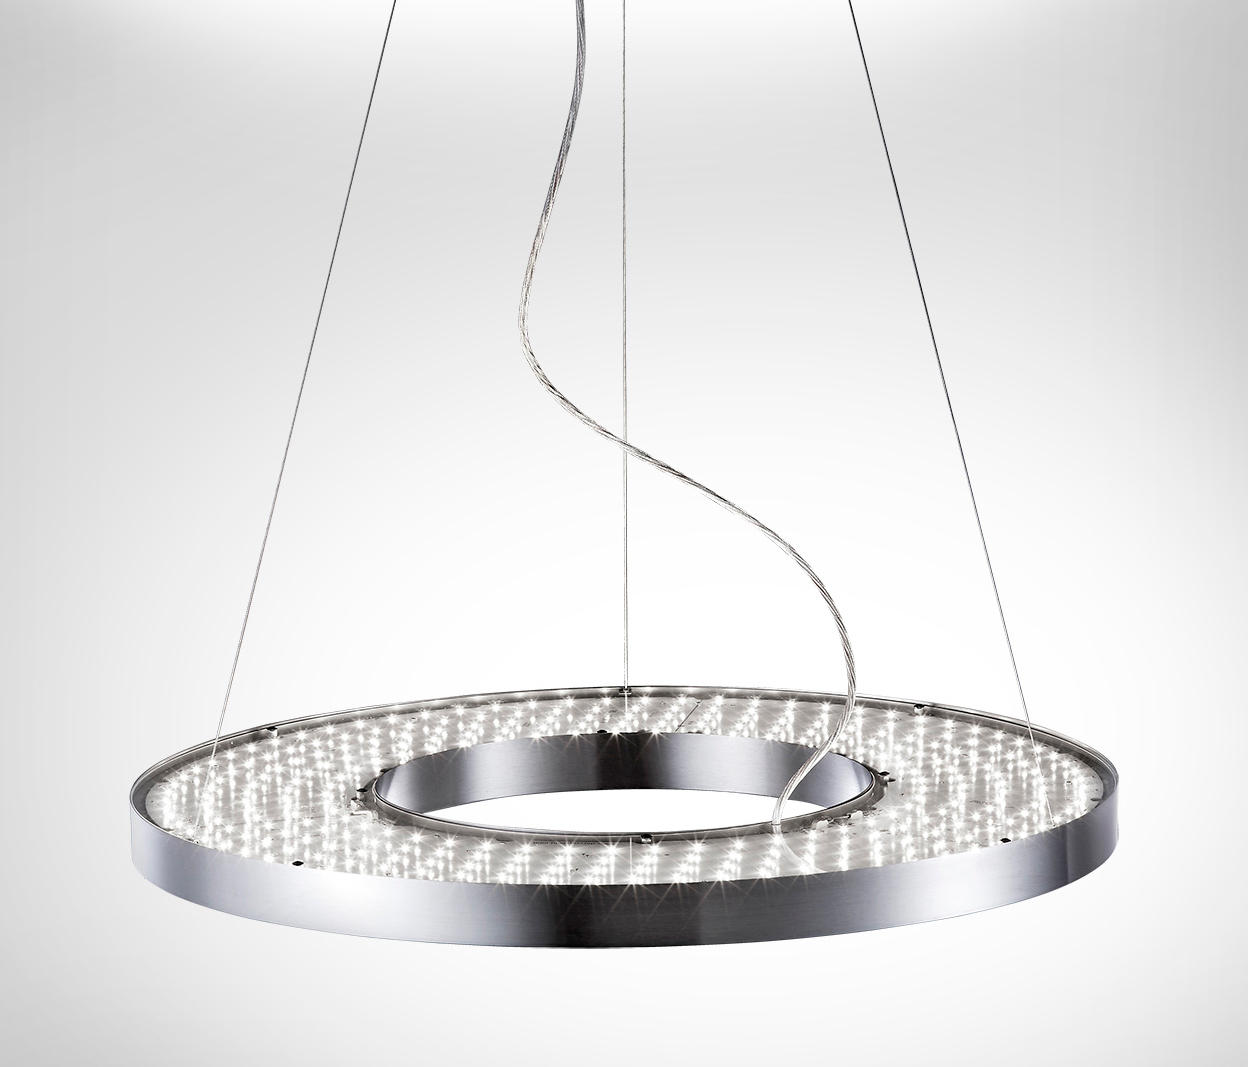 Luminaire Lighting Vivaa Ring Suspended Luminaire Suspended Lights From H Waldmann